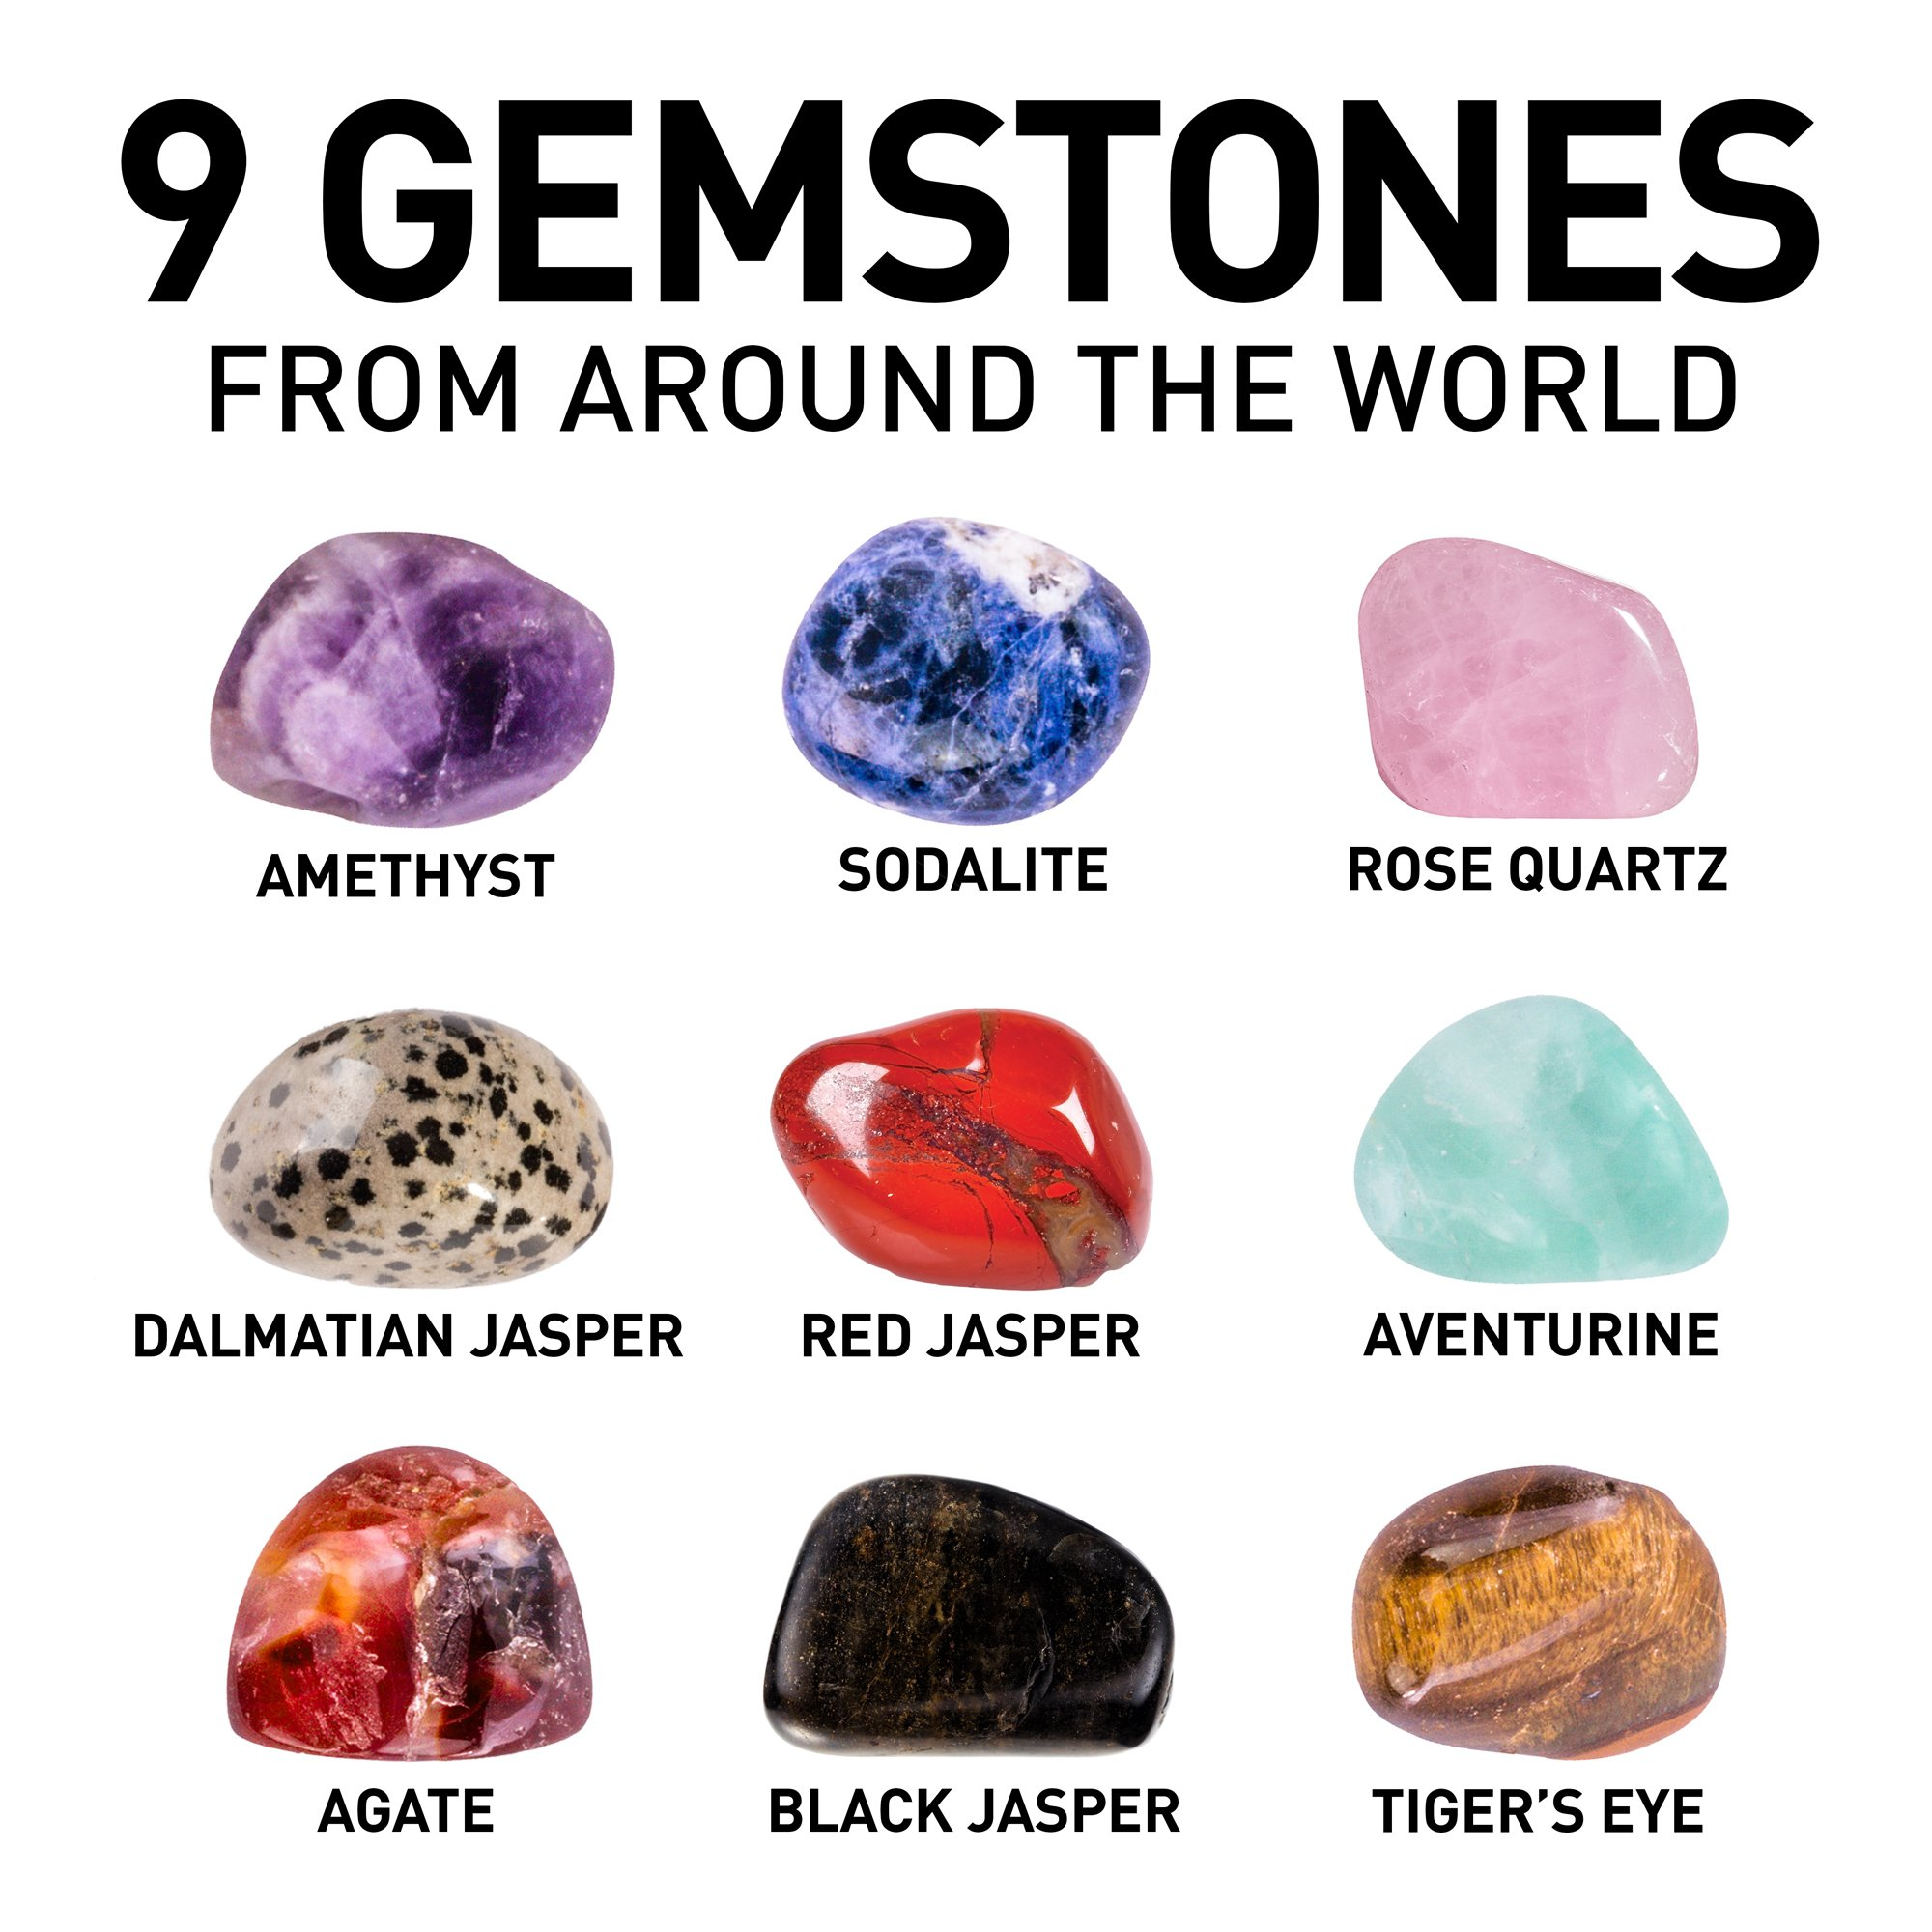 NATIONAL GEOGRAPHIC Starter Rock Tumbler Kit-Includes Rough Gemstones, 4 Polishing Grits, Jewelry Fastenings & Detailed Learning Guide - Great Stem Science Kit For Mineralogy & Geology Enthusiasts by NATIONAL GEOGRAPHIC (Image #4)